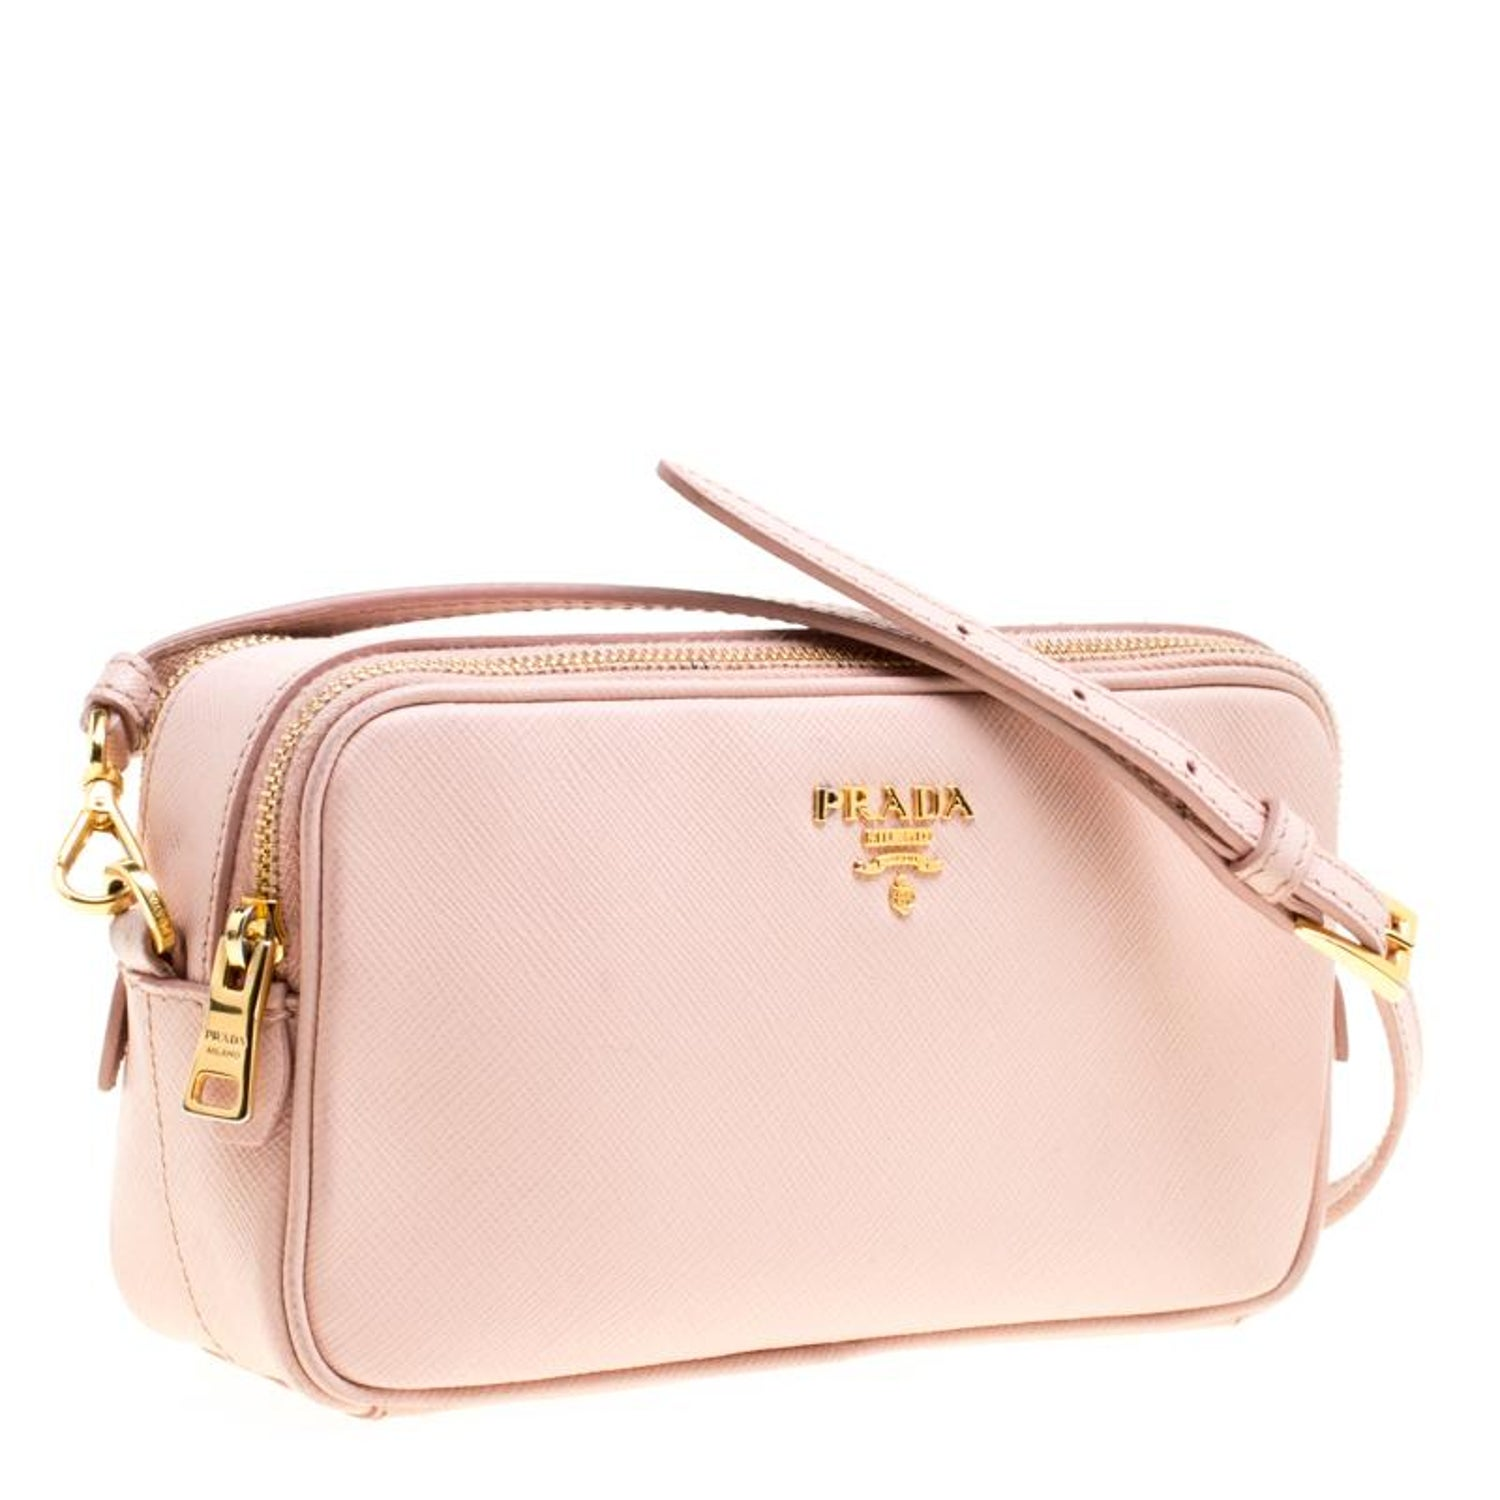 c8d66661047a98 Prada Blush Pink Saffiano Lux Leather Camera Crossbody Bag For Sale at  1stdibs